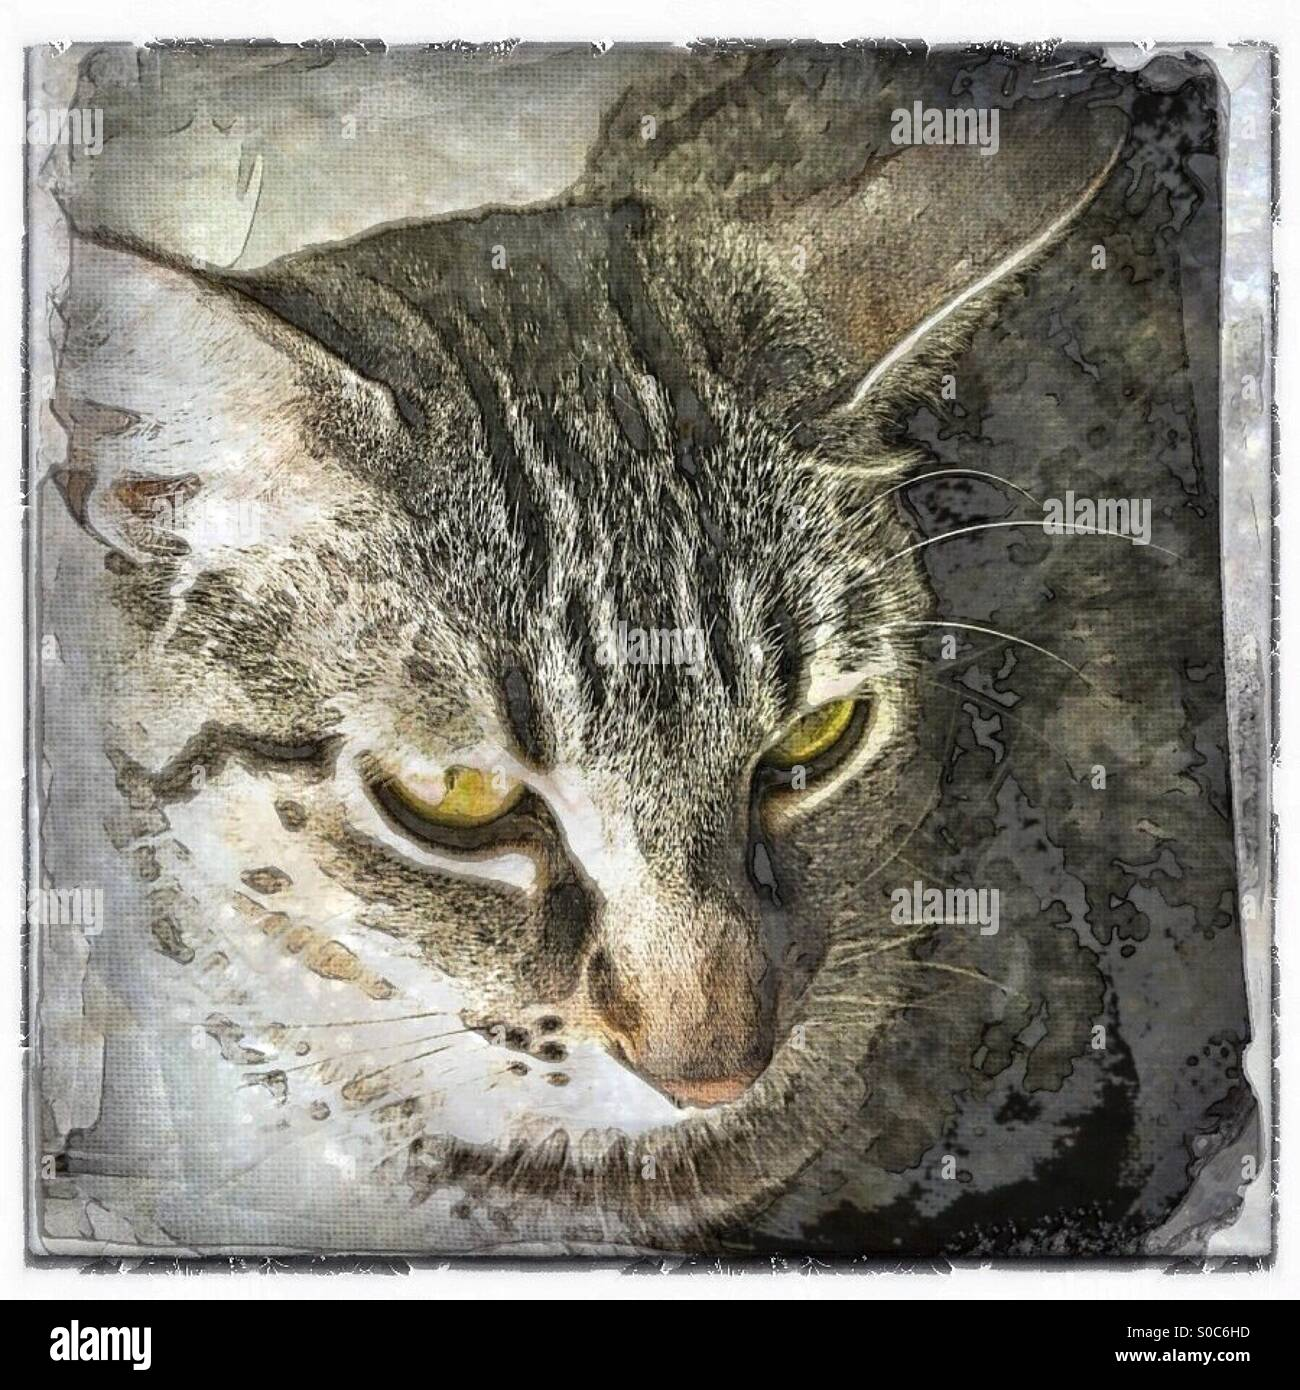 Abstract version of closeup of a tabby cat with green eyes - Stock Image